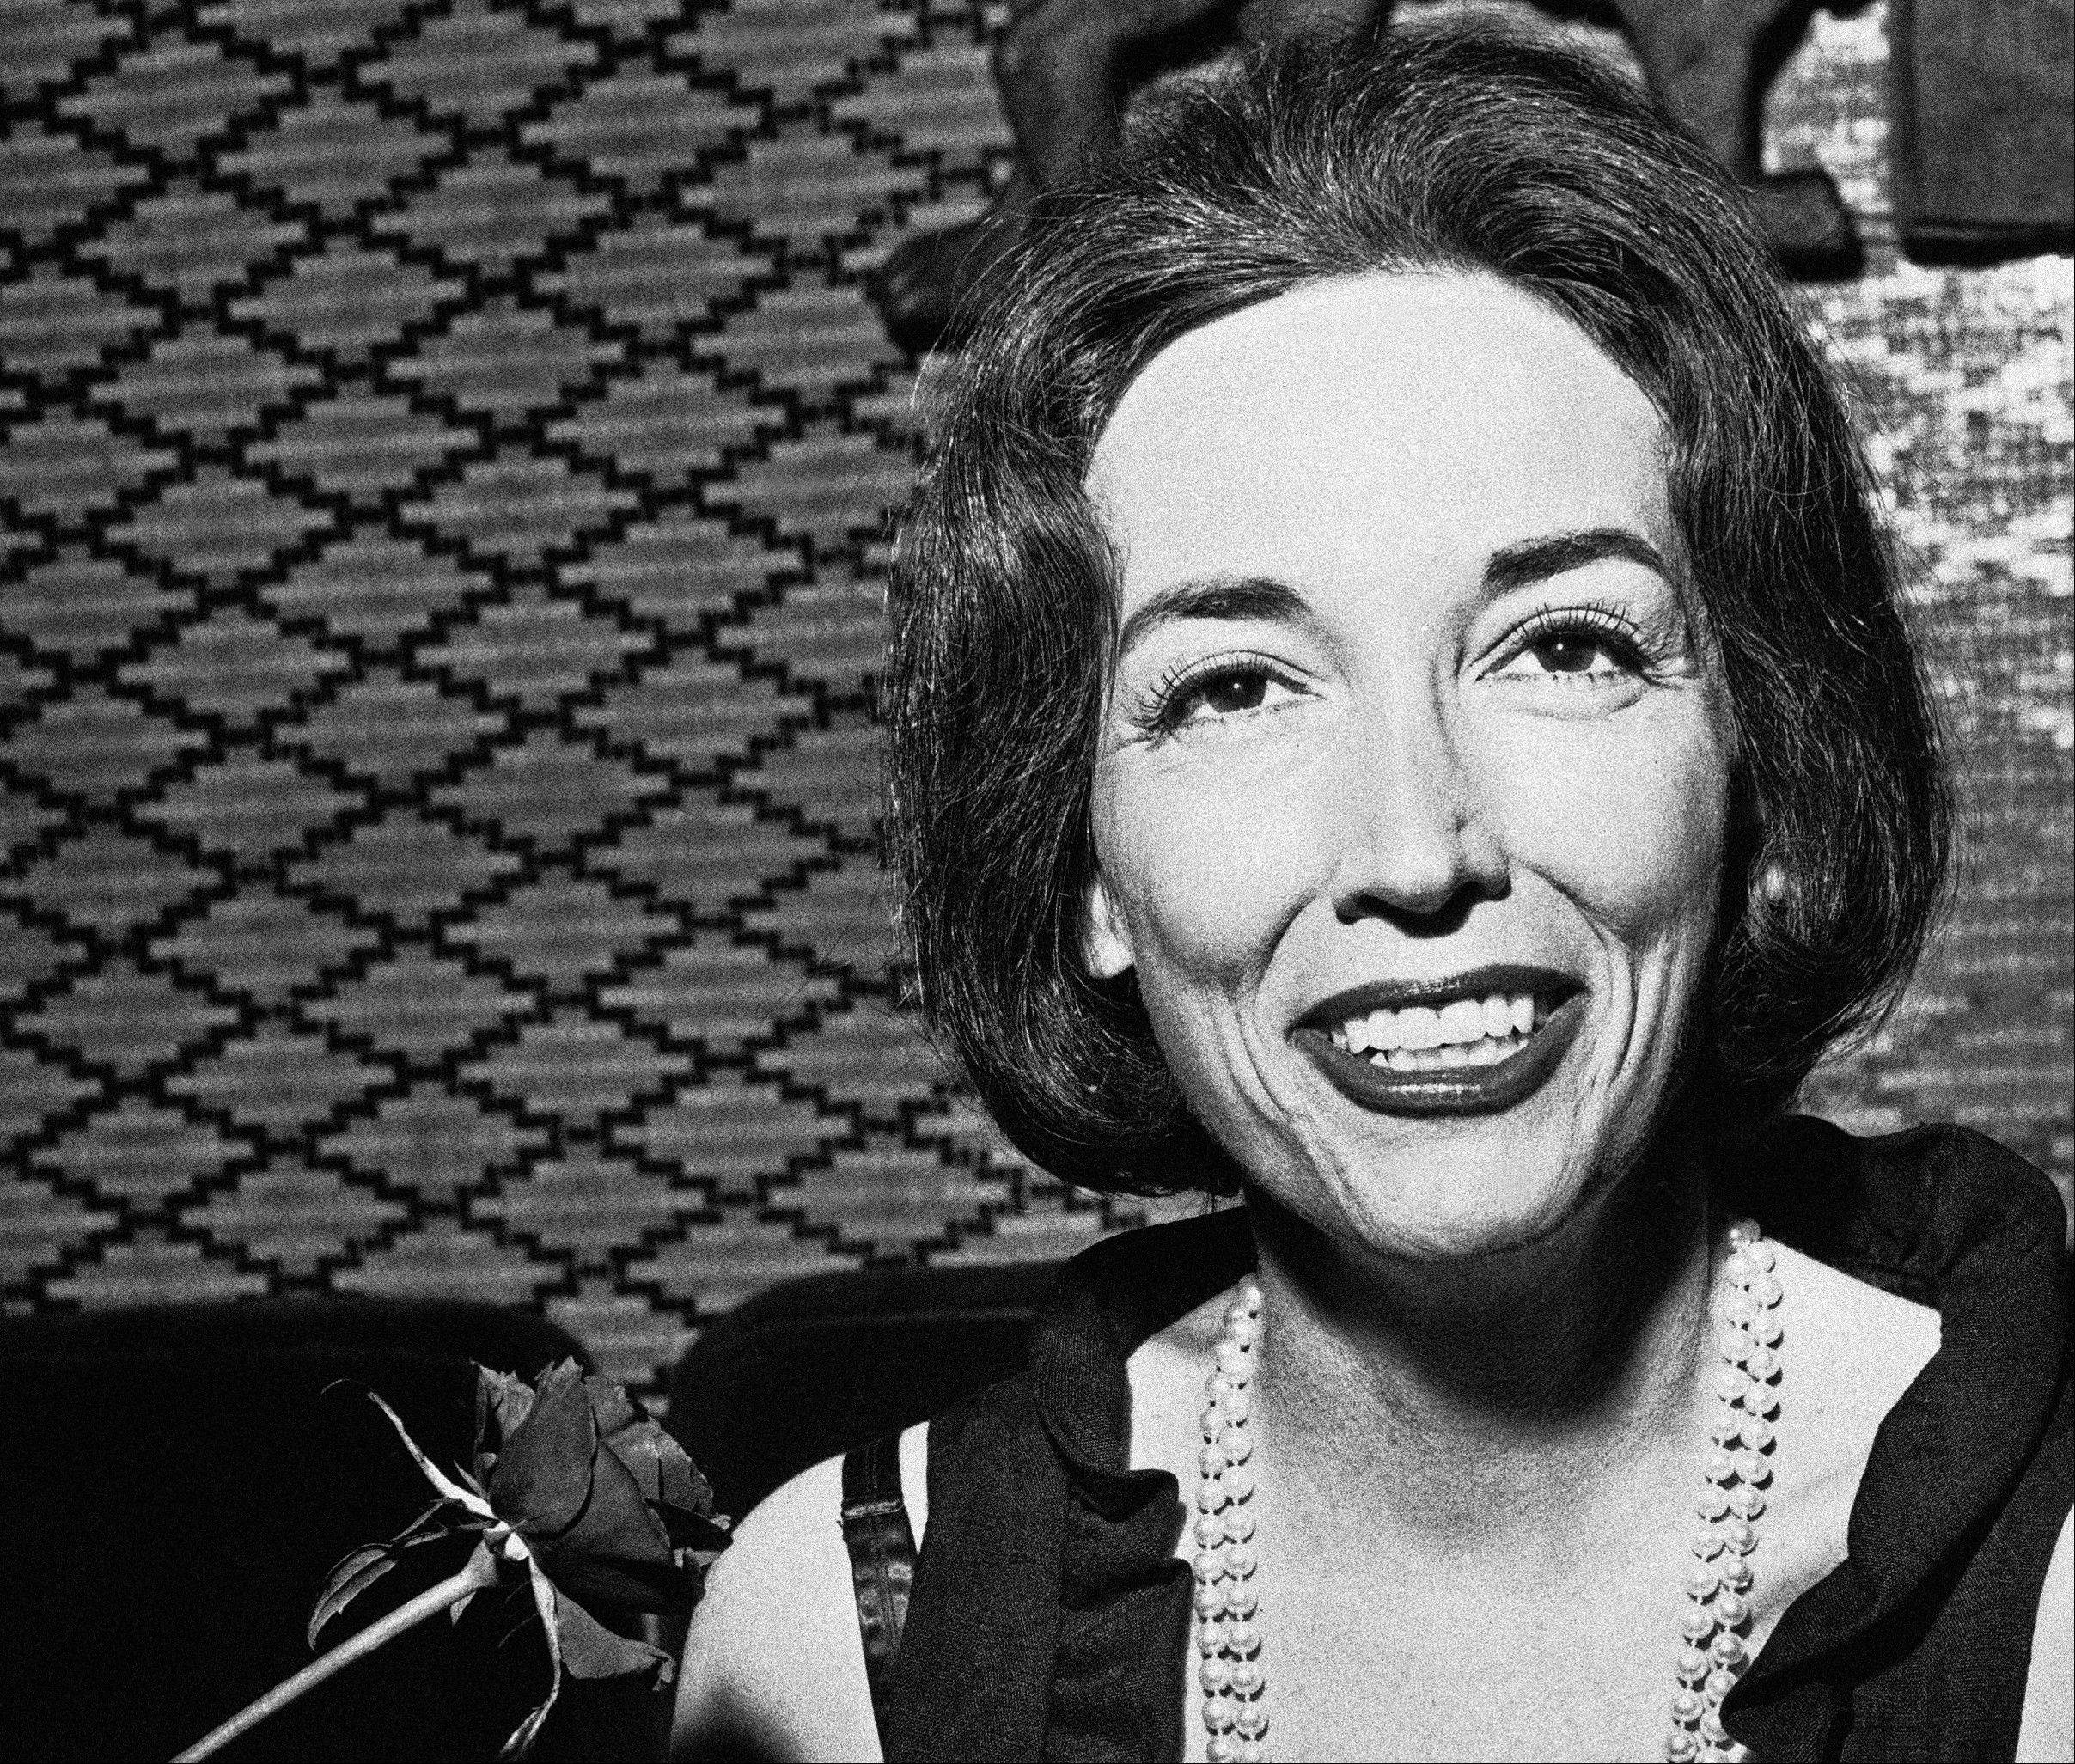 This 1964 file photo shows author Helen Gurley Brown. Brown, longtime editor of Cosmopolitan magazine, died Monday, Aug. 13, 2012 at a hospital in New York after a brief hospitalization. She was 90.